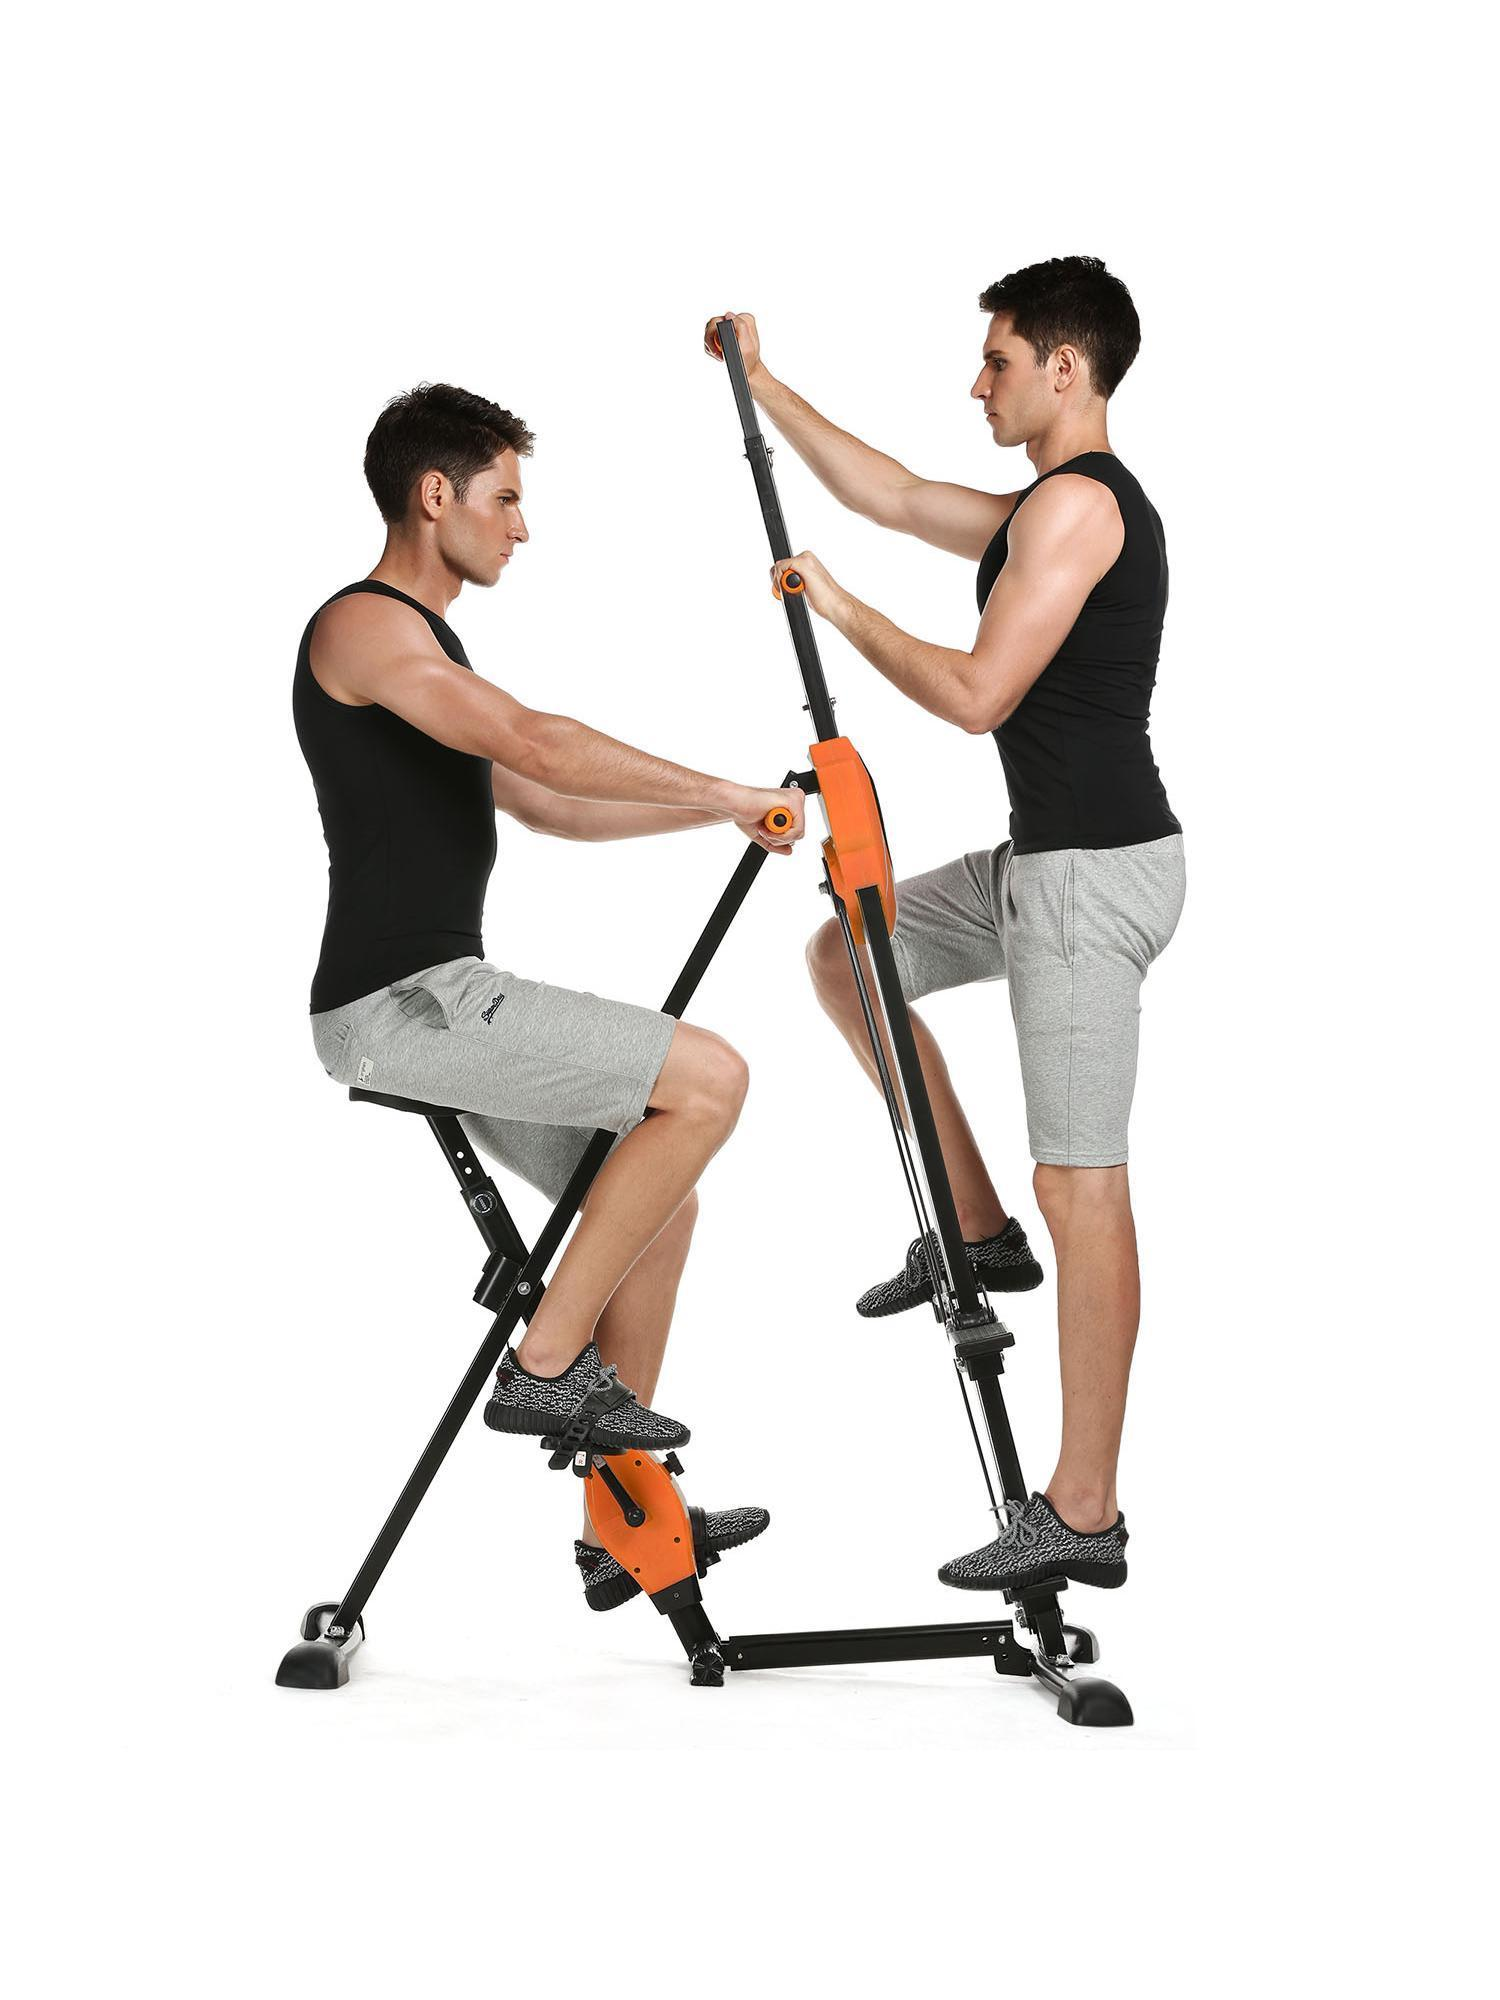 Vertical Climber Folding Total Body Workout Machine Fitness Gym Training Equipment WSY by